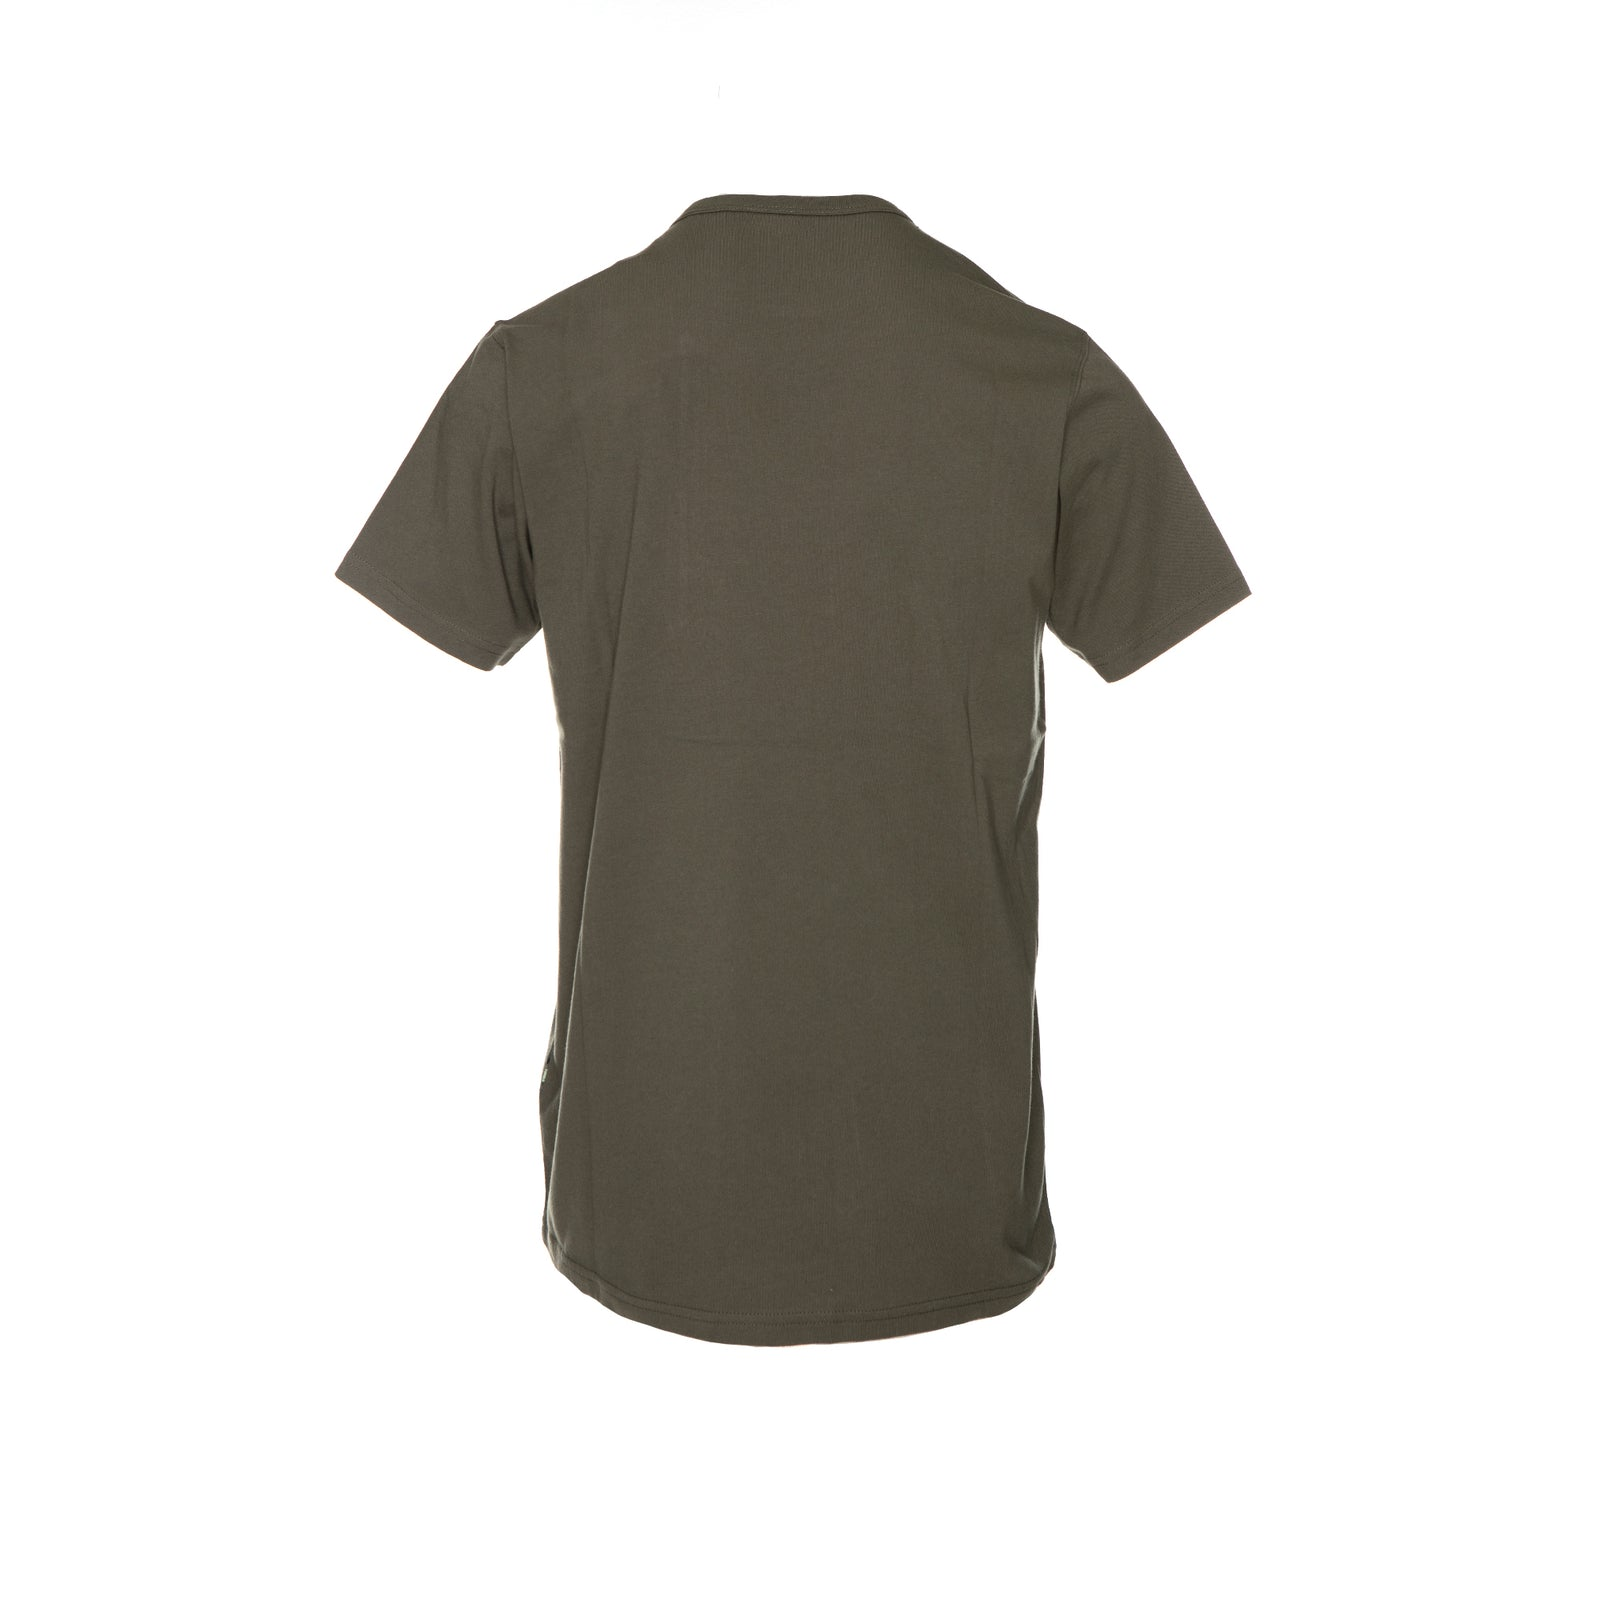 Maharishi Tech Travel Men's T-Shirt.